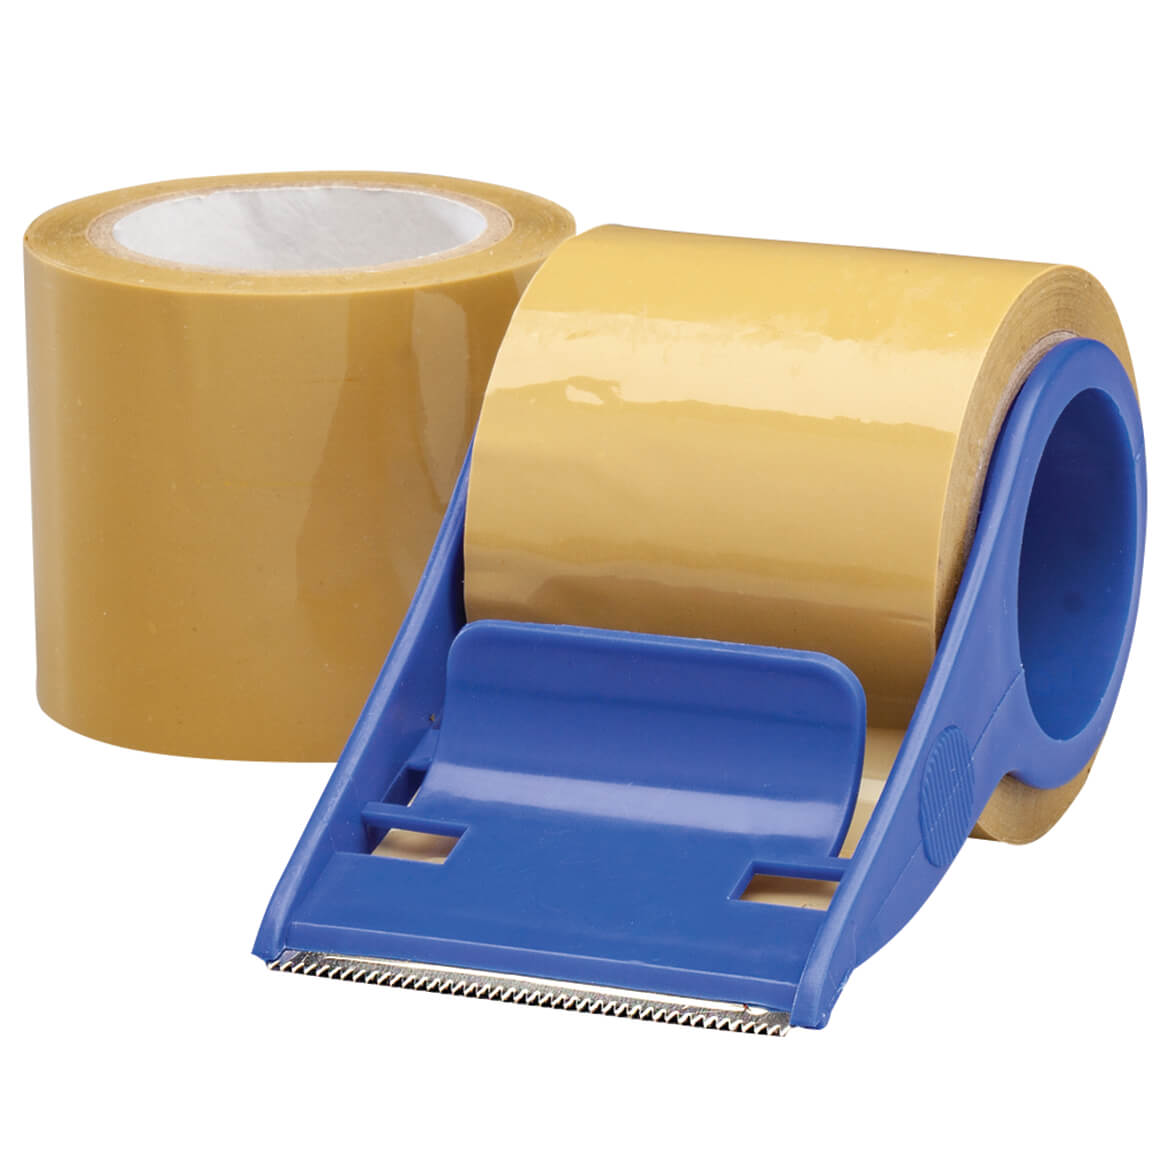 Packaging Tape and Rolling Dispenser Set of 3-370948